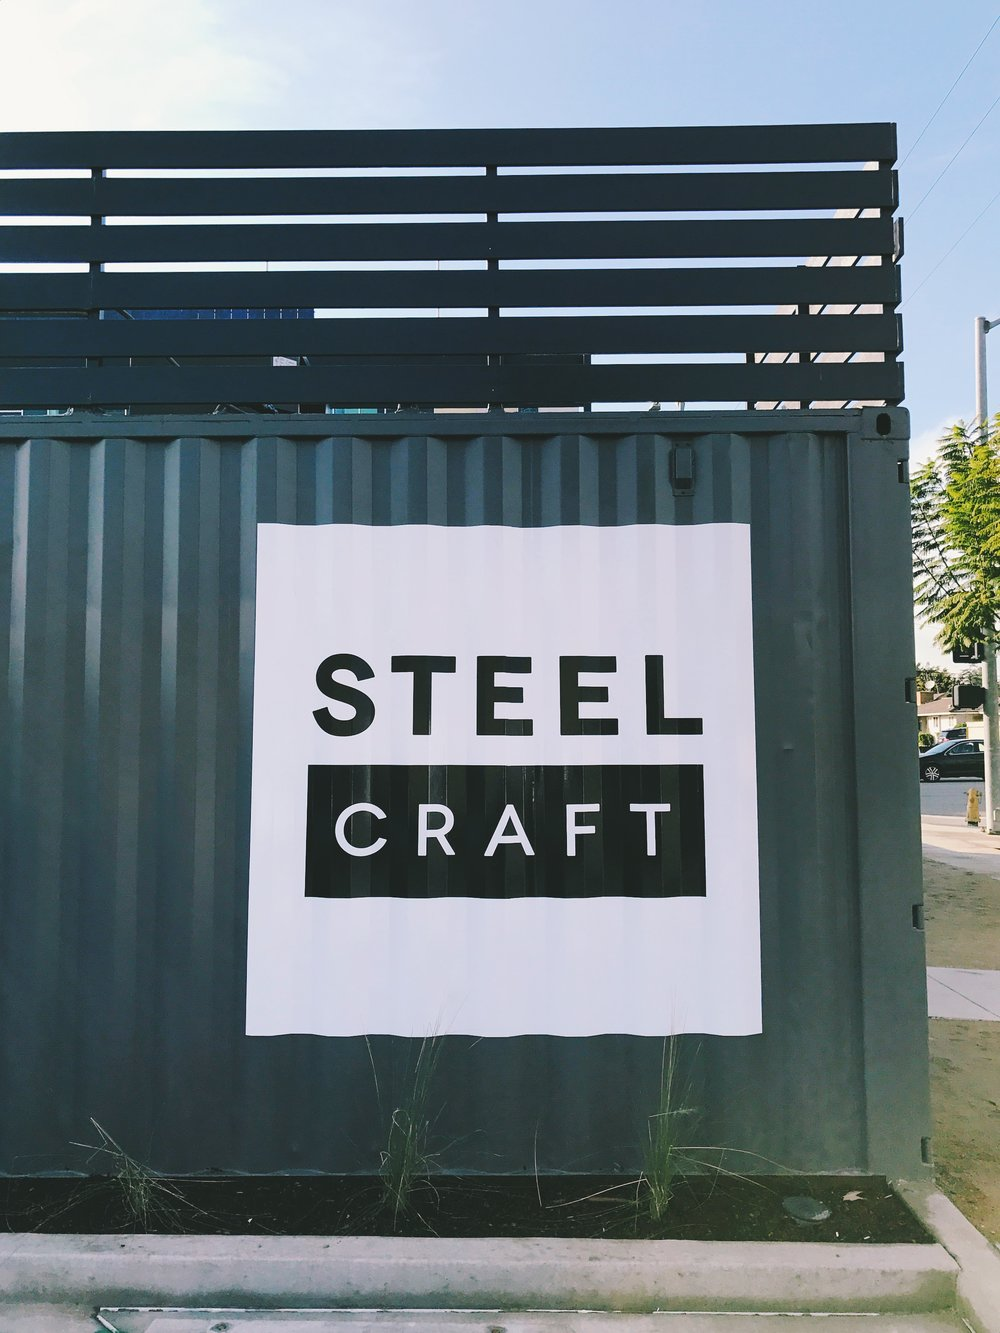 Steefcraft, the new outdoor urban eatery in Long Beach — Home